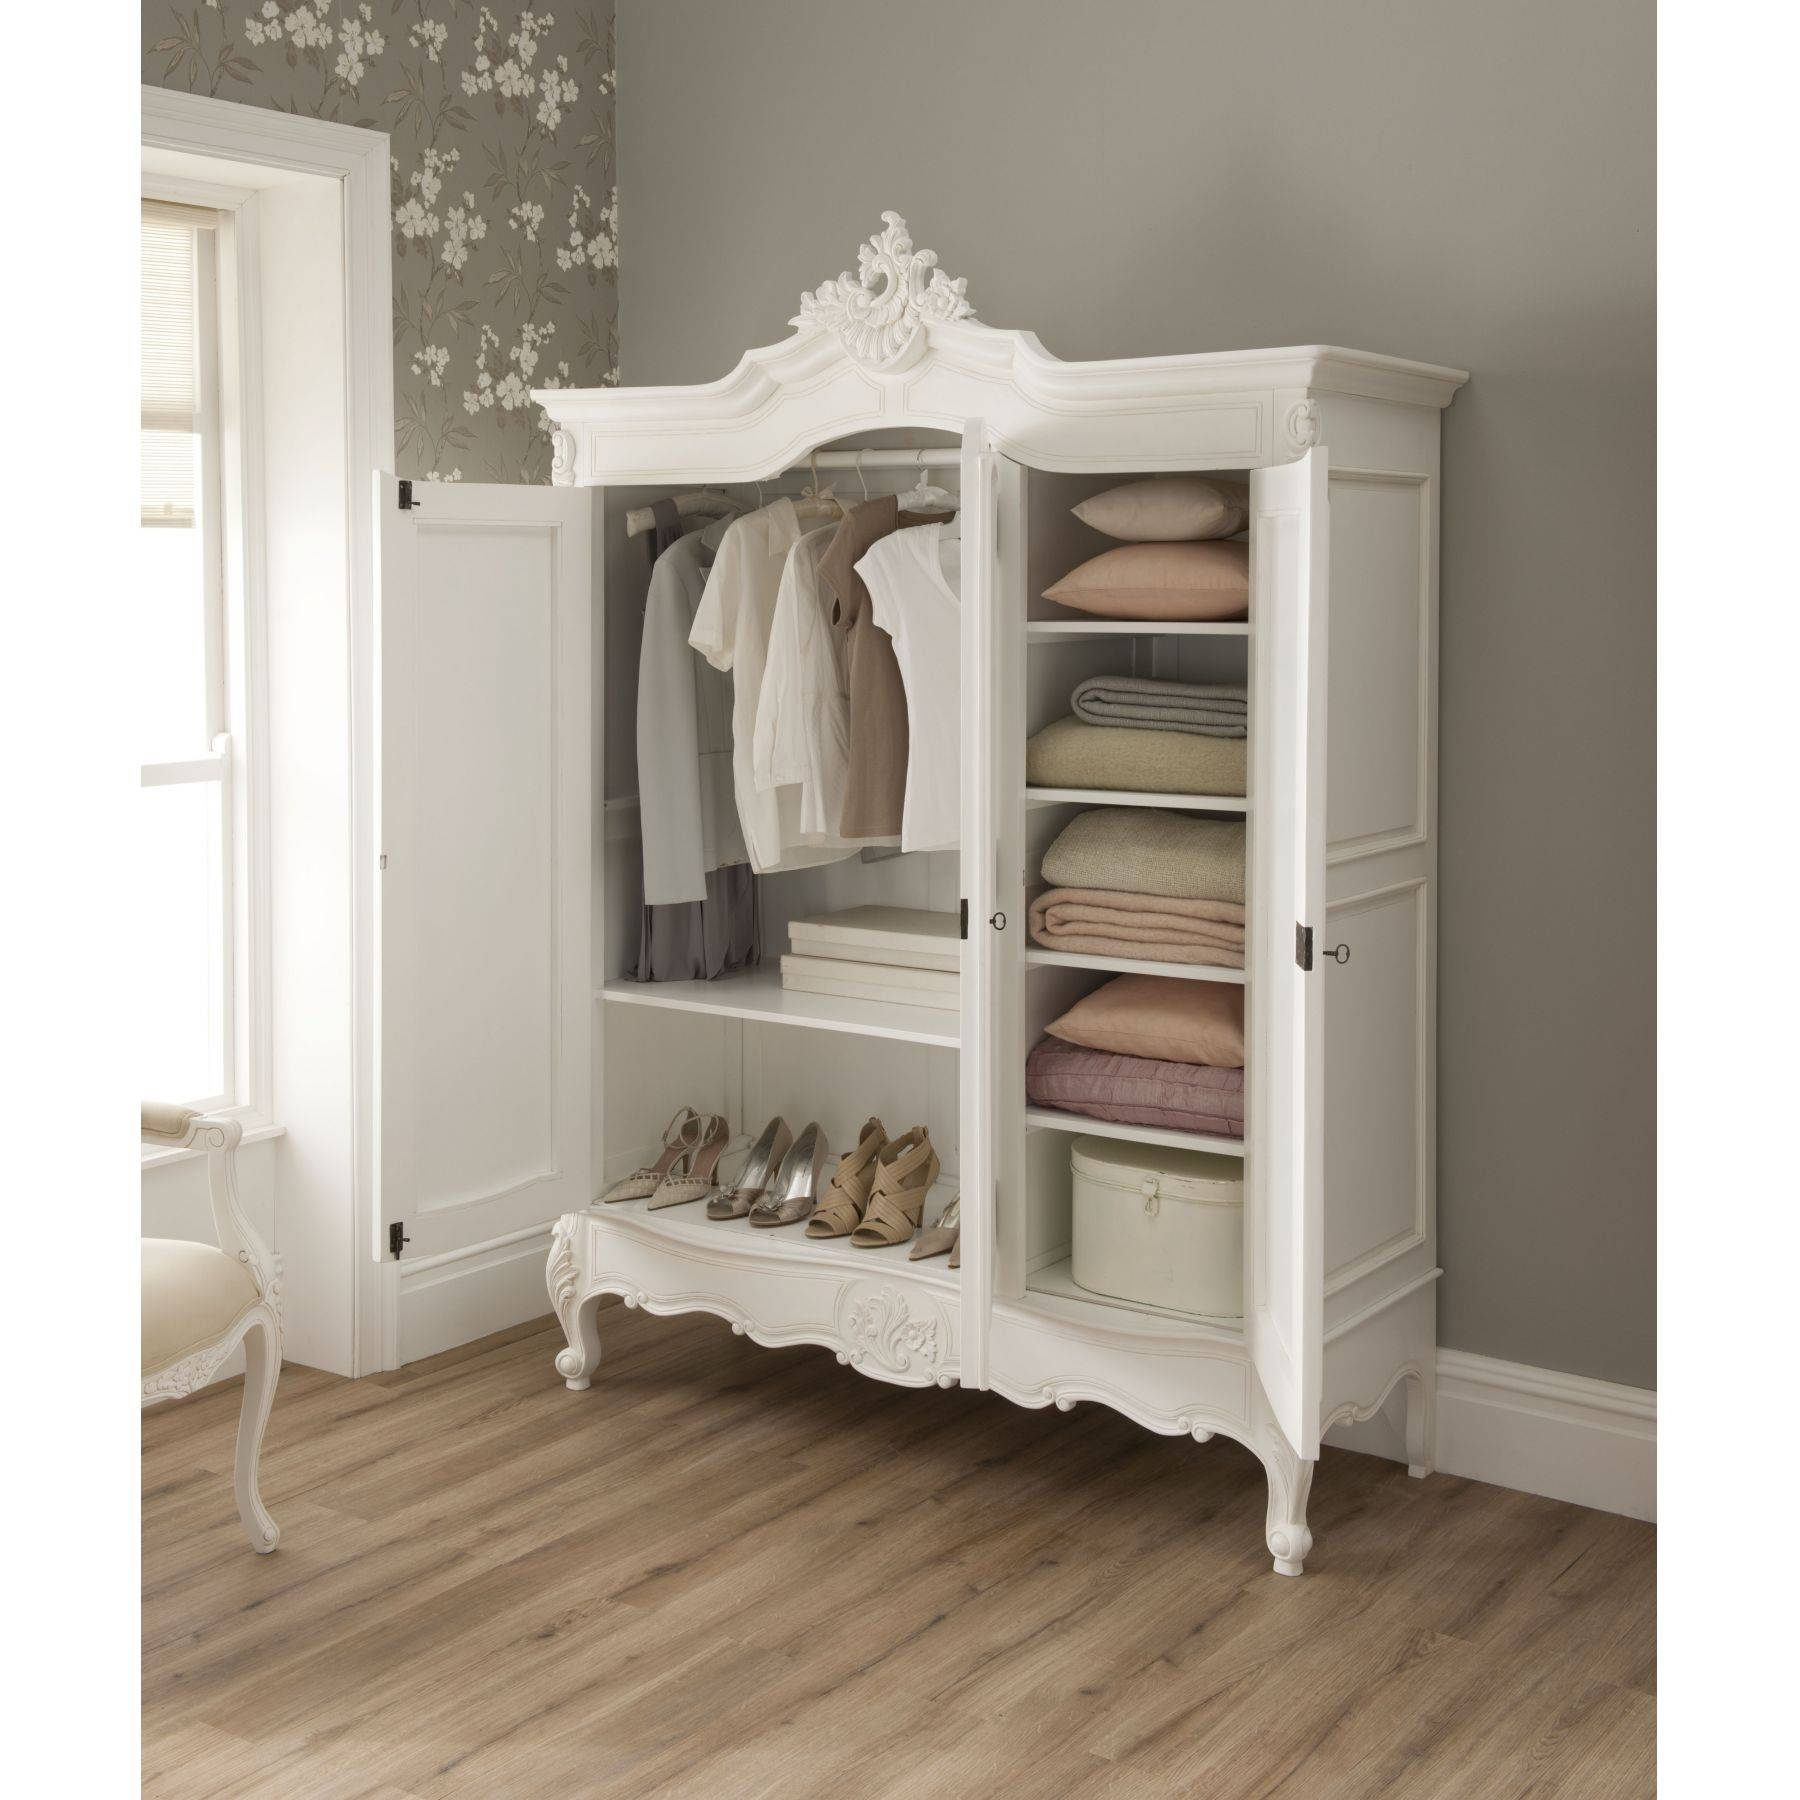 La Rochelle Shabby Chic Antique Style Wardrobe | Shabby Chic Furniture inside Chic Wardrobes (Image 5 of 15)